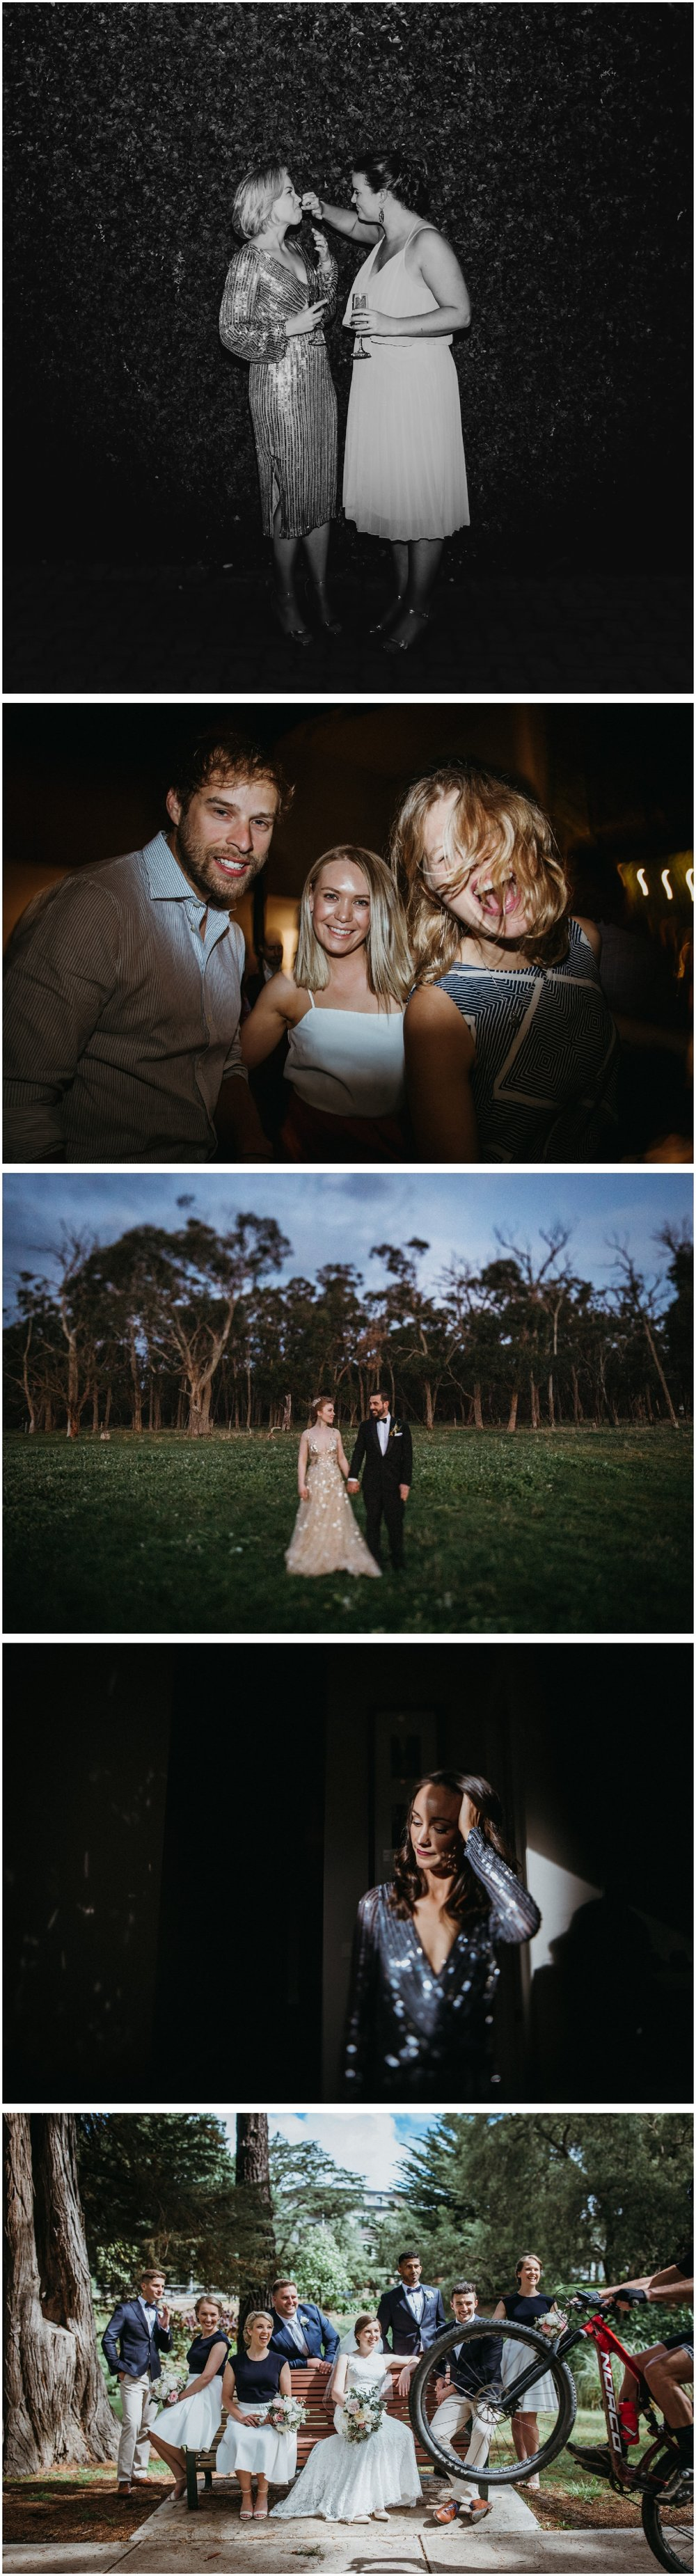 Melbourne Wedding Photographer - 2018 in review -185A1874.jpg